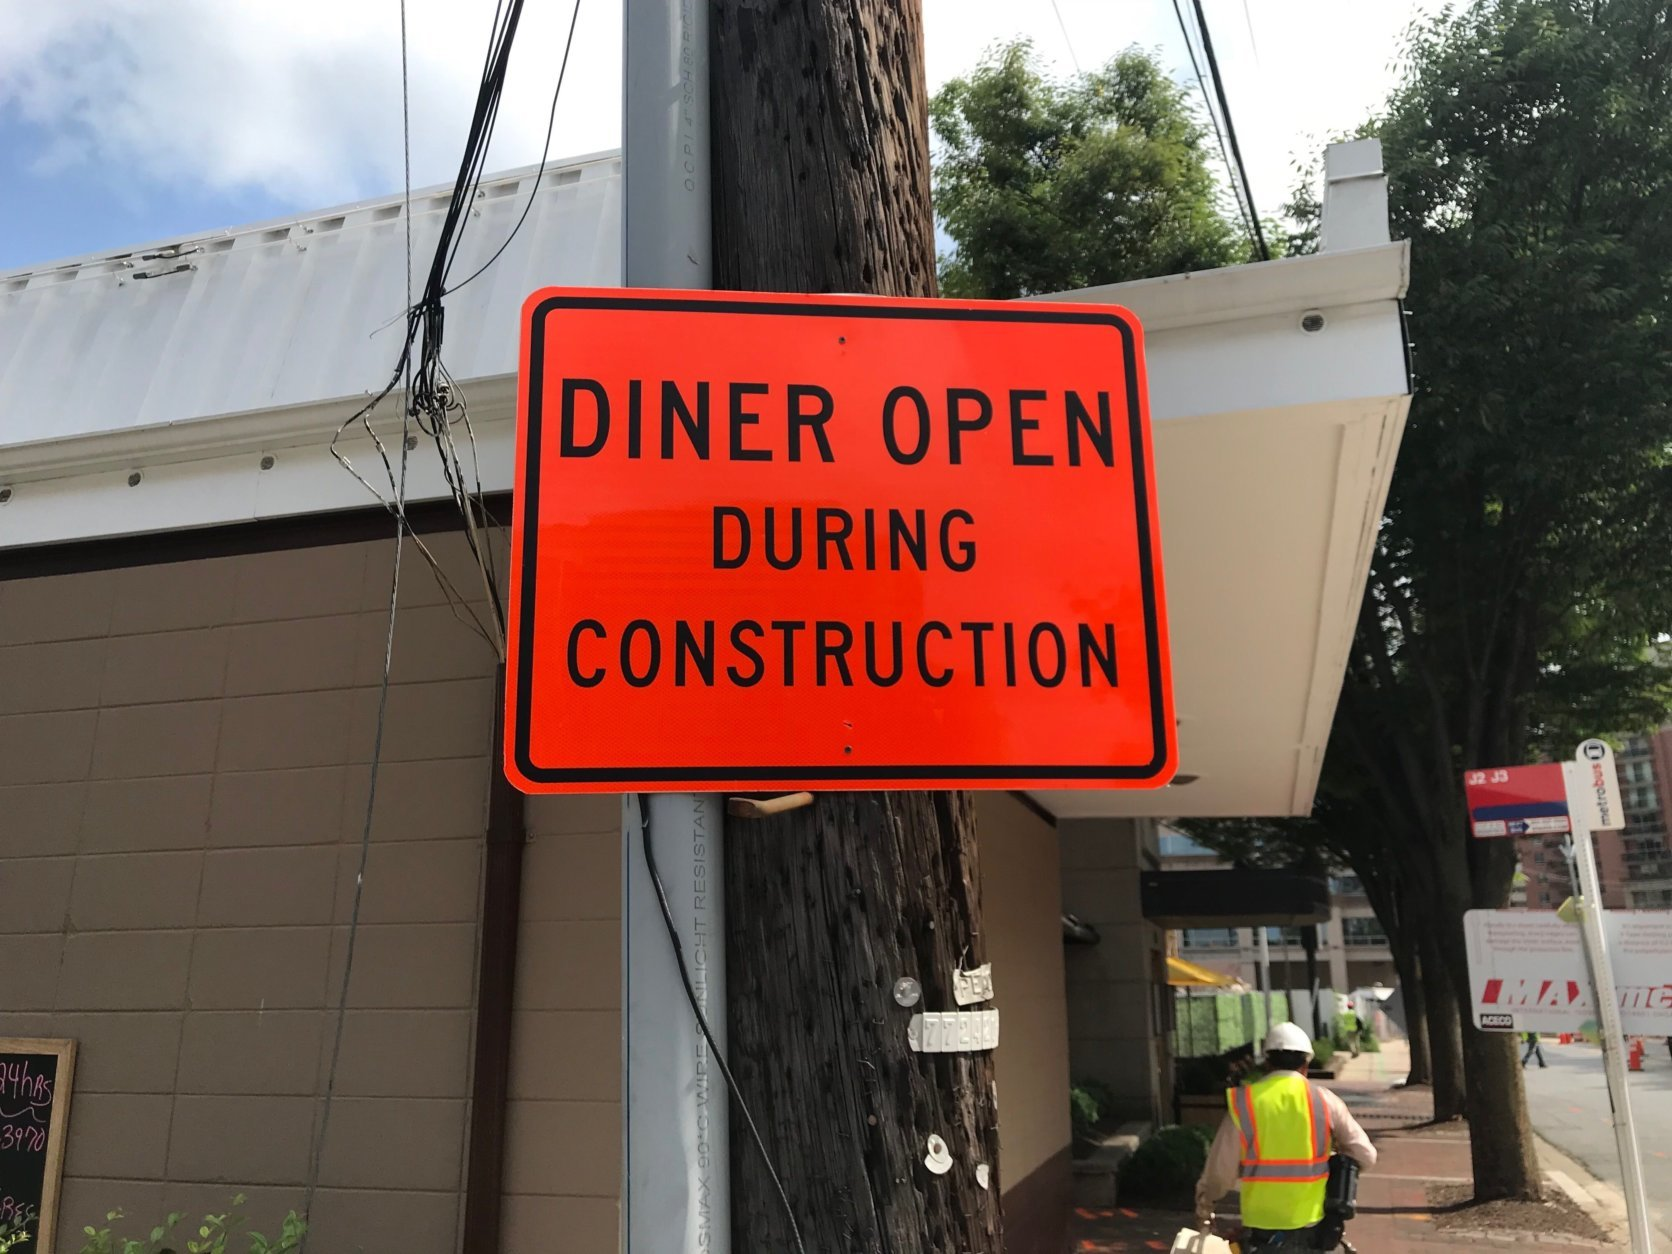 The loss of parking has chased away customers at the diner, which doesn't have a parking lot. (WTOP/Dick Uliano)